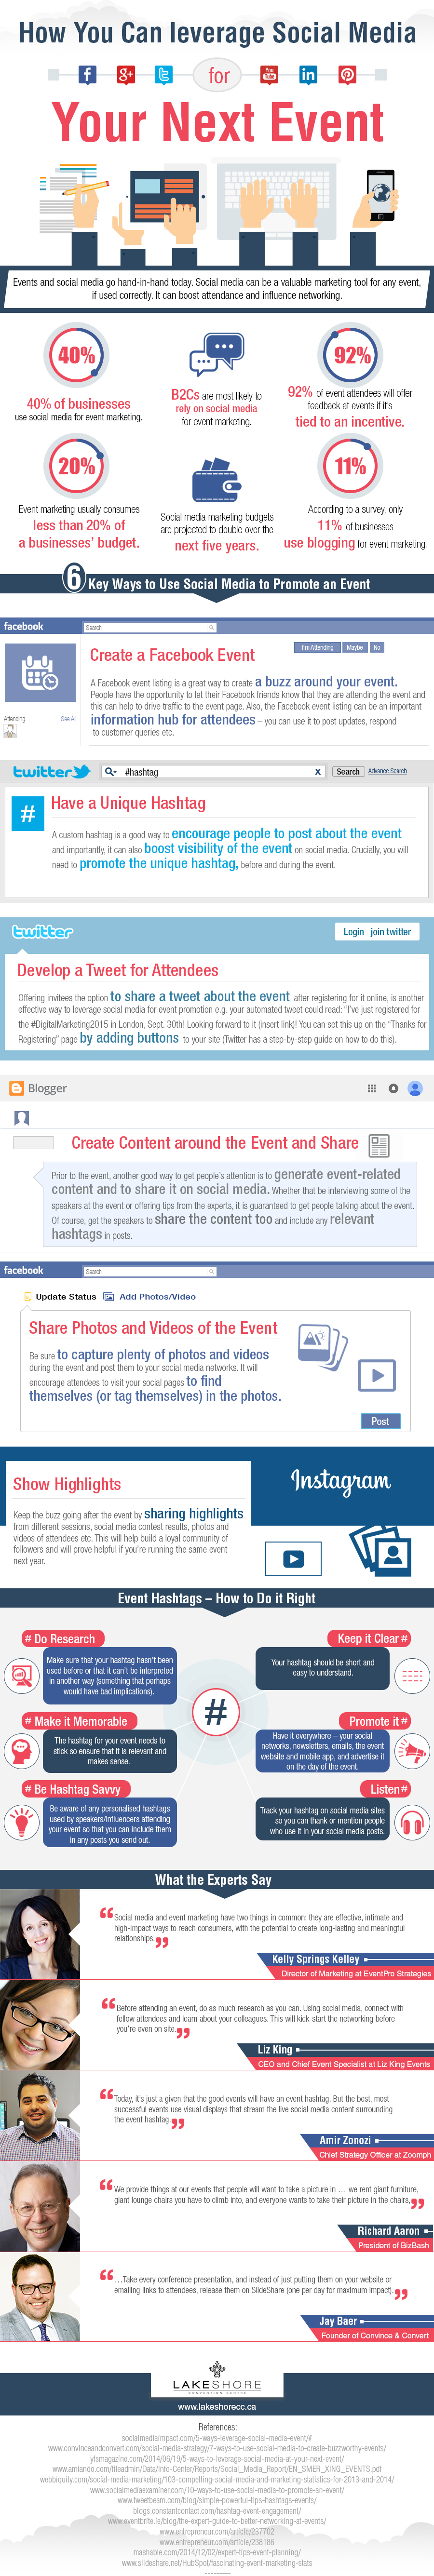 How to Leverage Social Media for Your Next Event - Infographic - Image 1